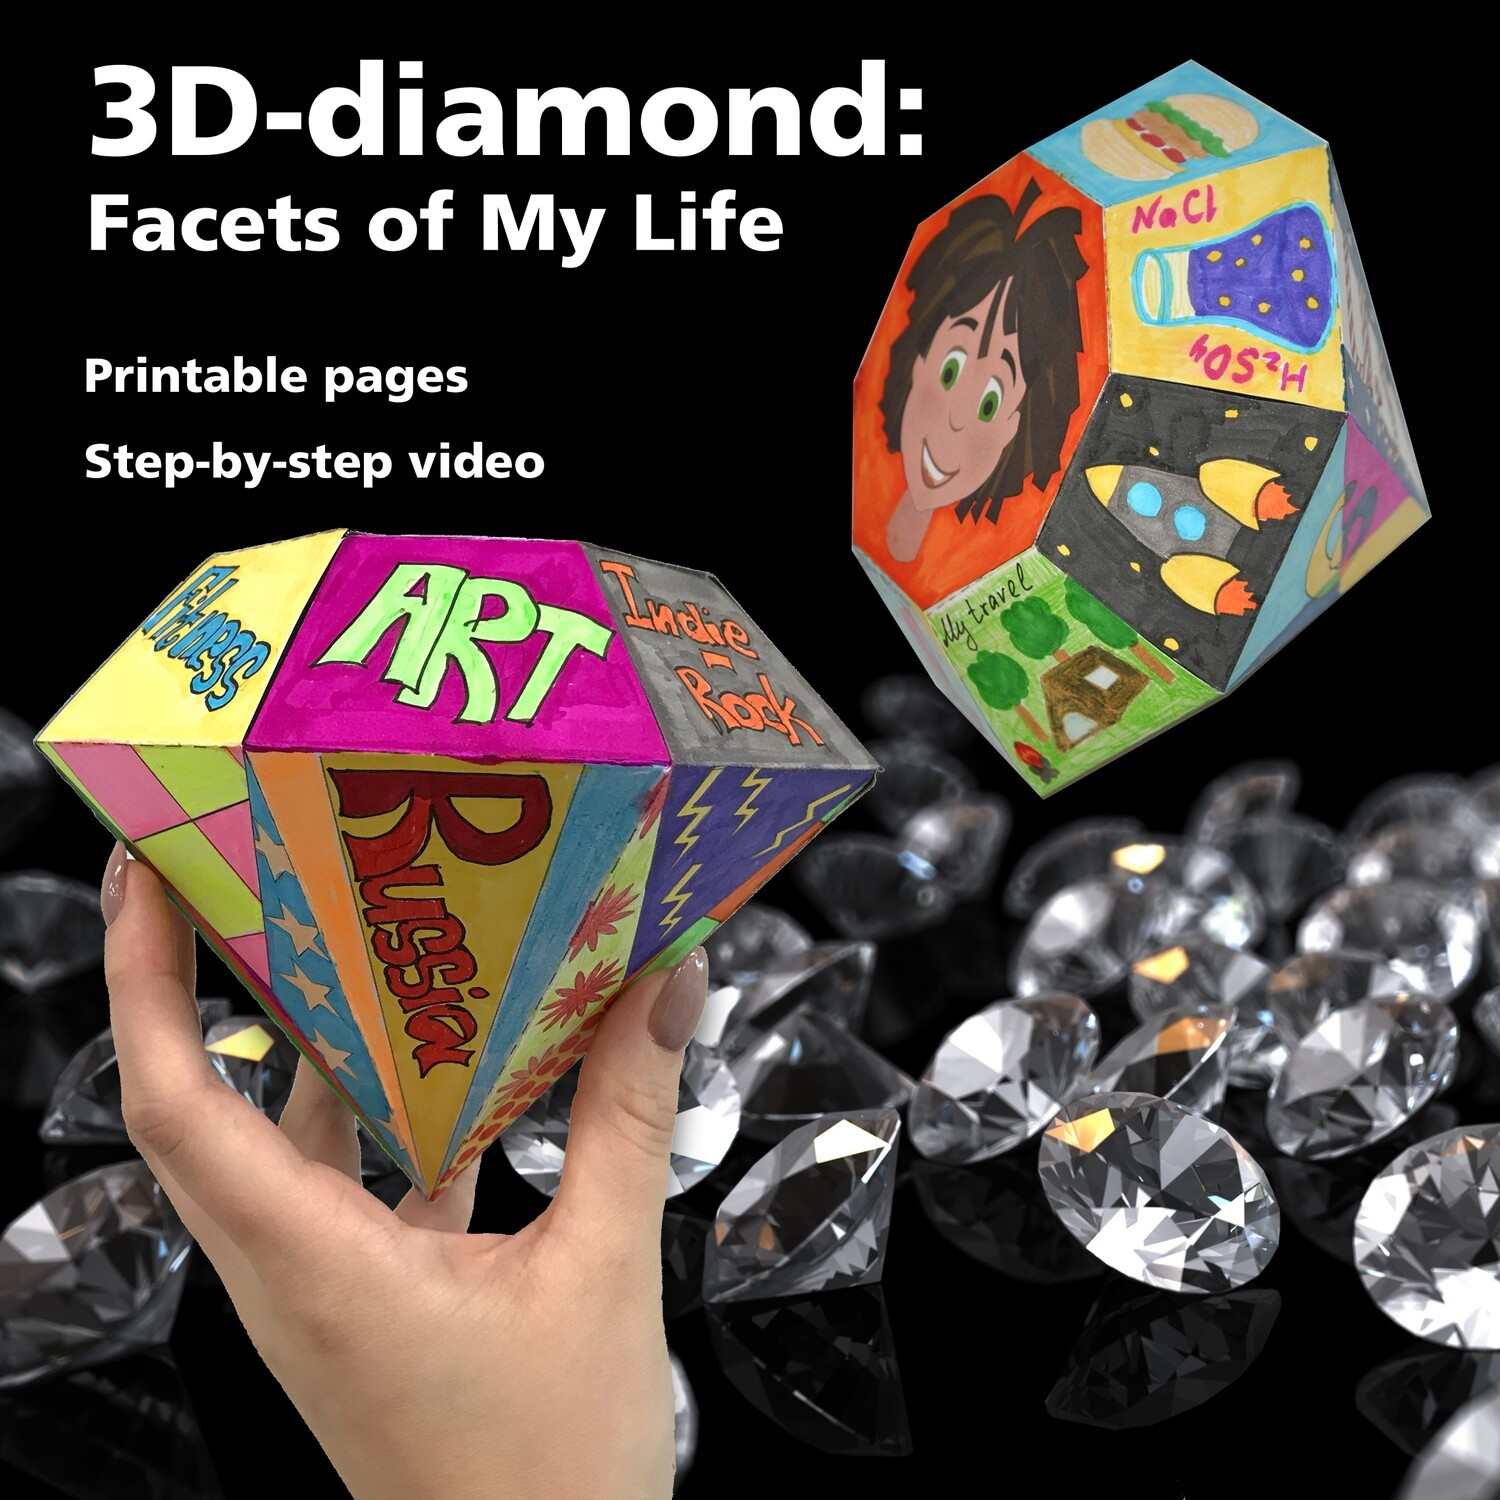 3D-Diamond: Facets of My Life